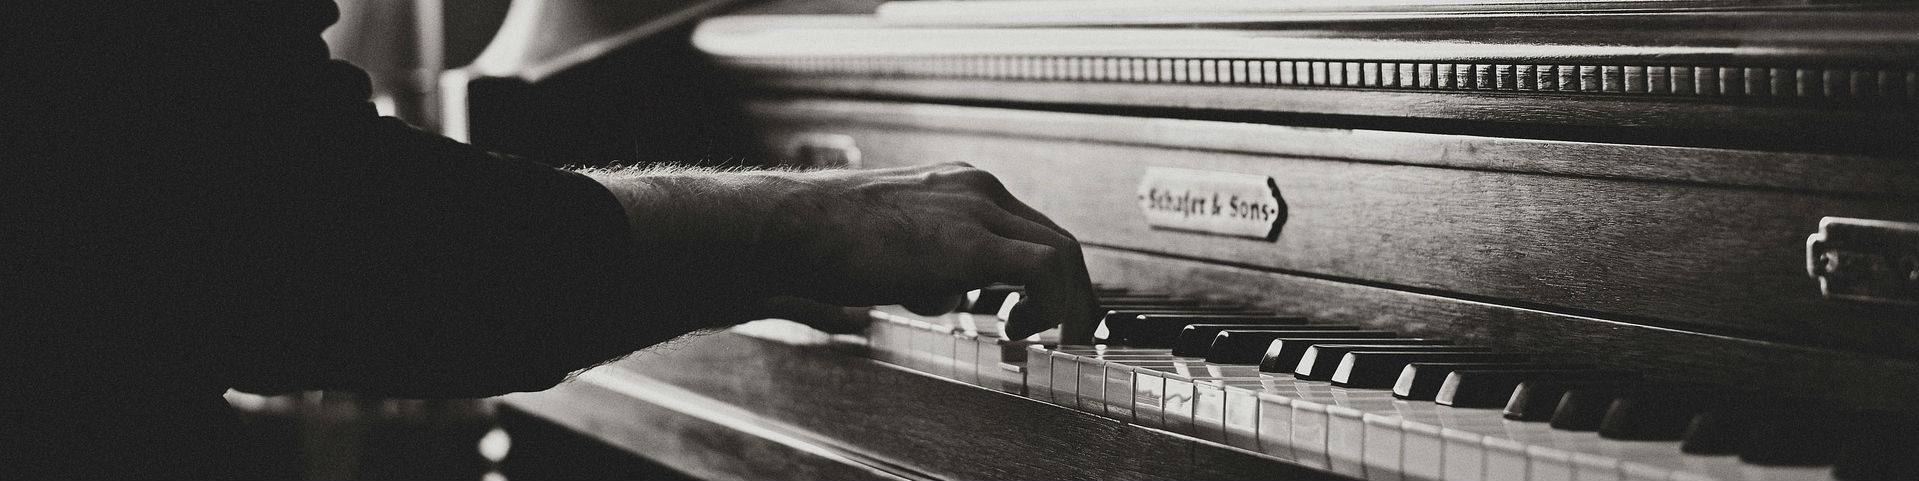 A black and white image of hands playing a piano